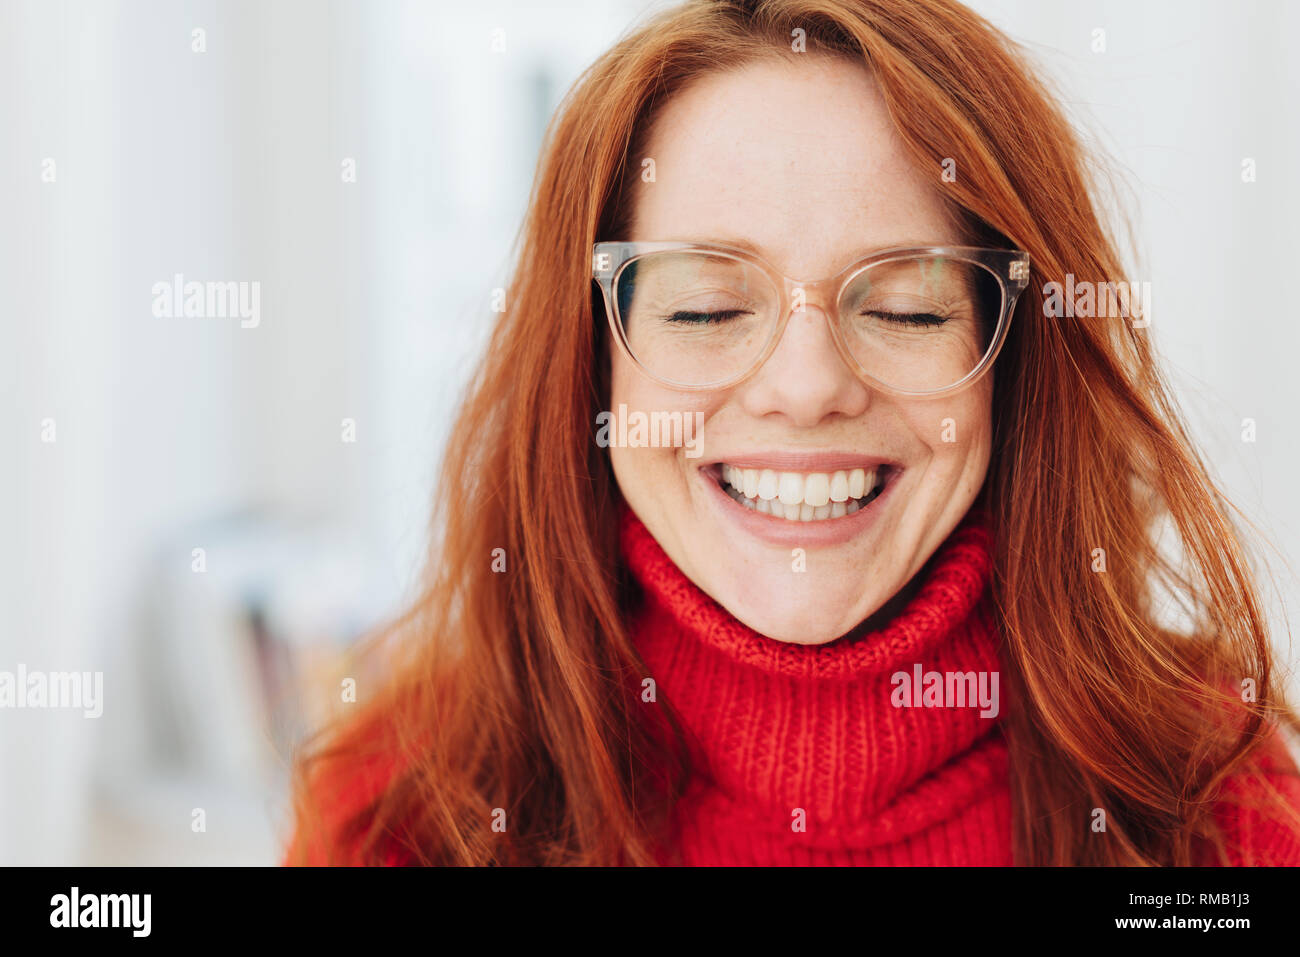 Pretty young woman wearing glasses beaming at the camera with a toothy grin as she closes her eyes - Stock Image